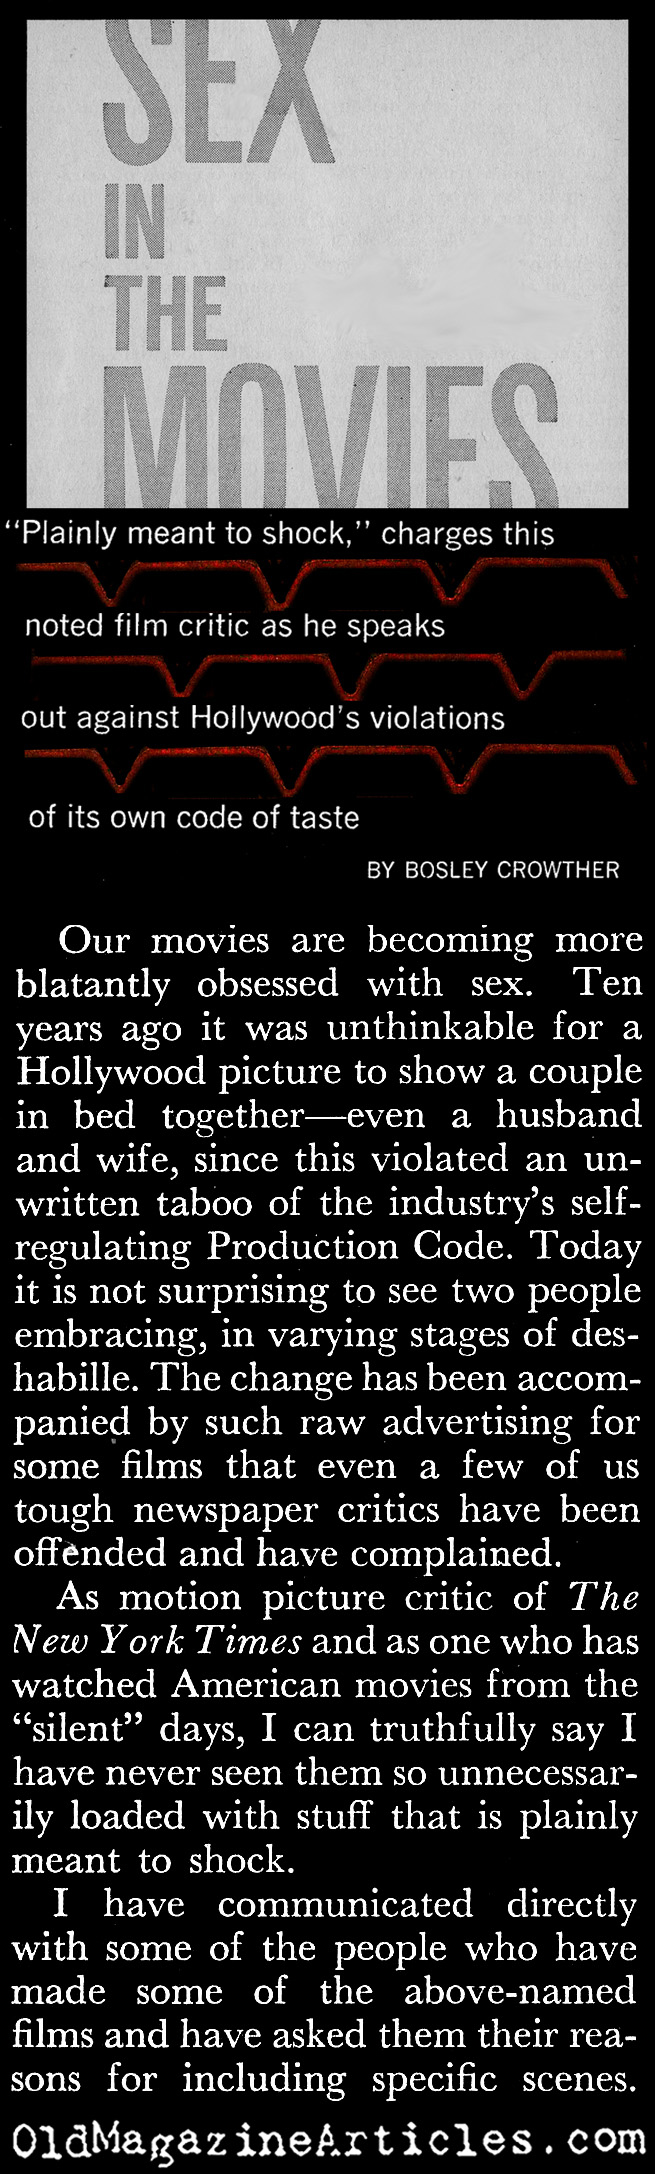 Sex in the Movies (Coronet Magazine, 1961)